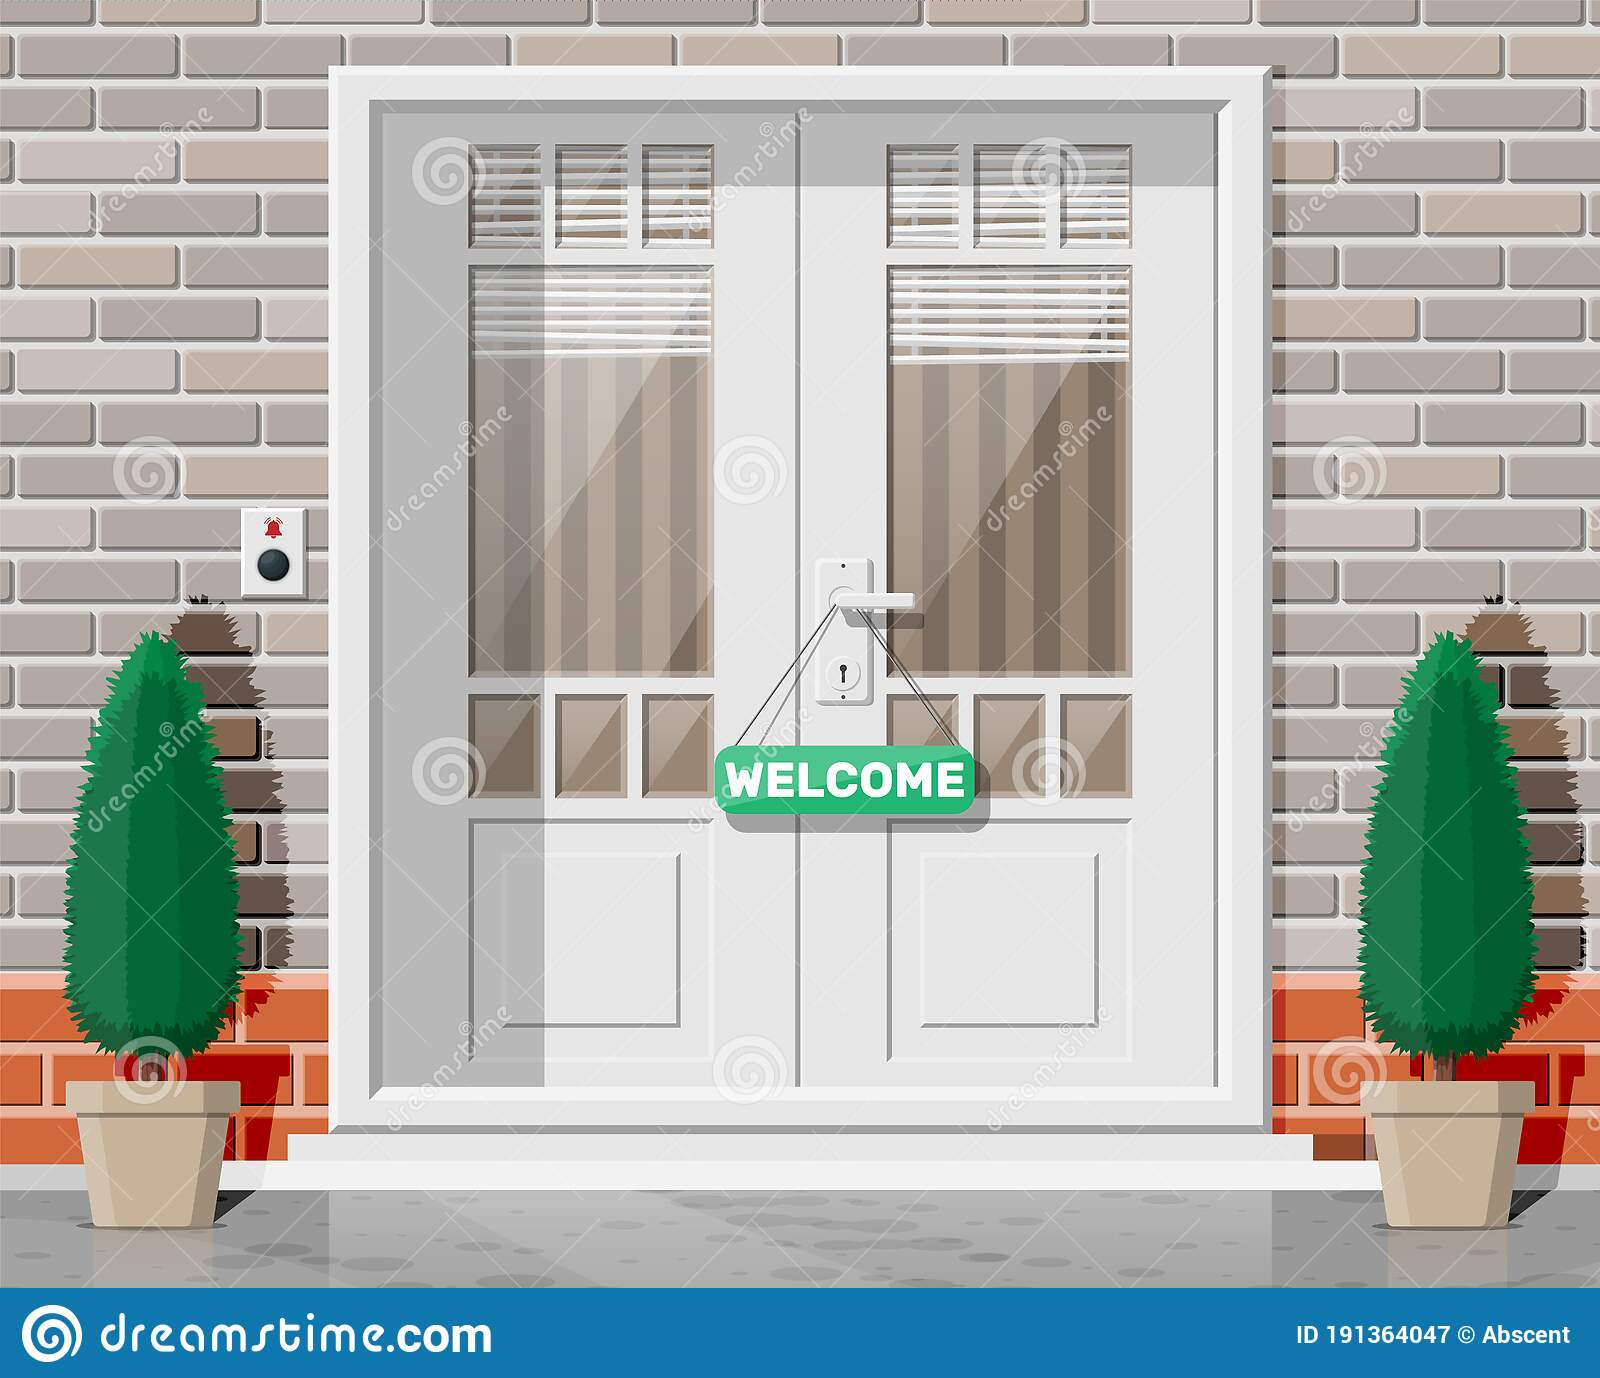 Wooden Cottage Door With Windows And Window Blind Stock Vector Illustration Of Cottage Invite 191364047